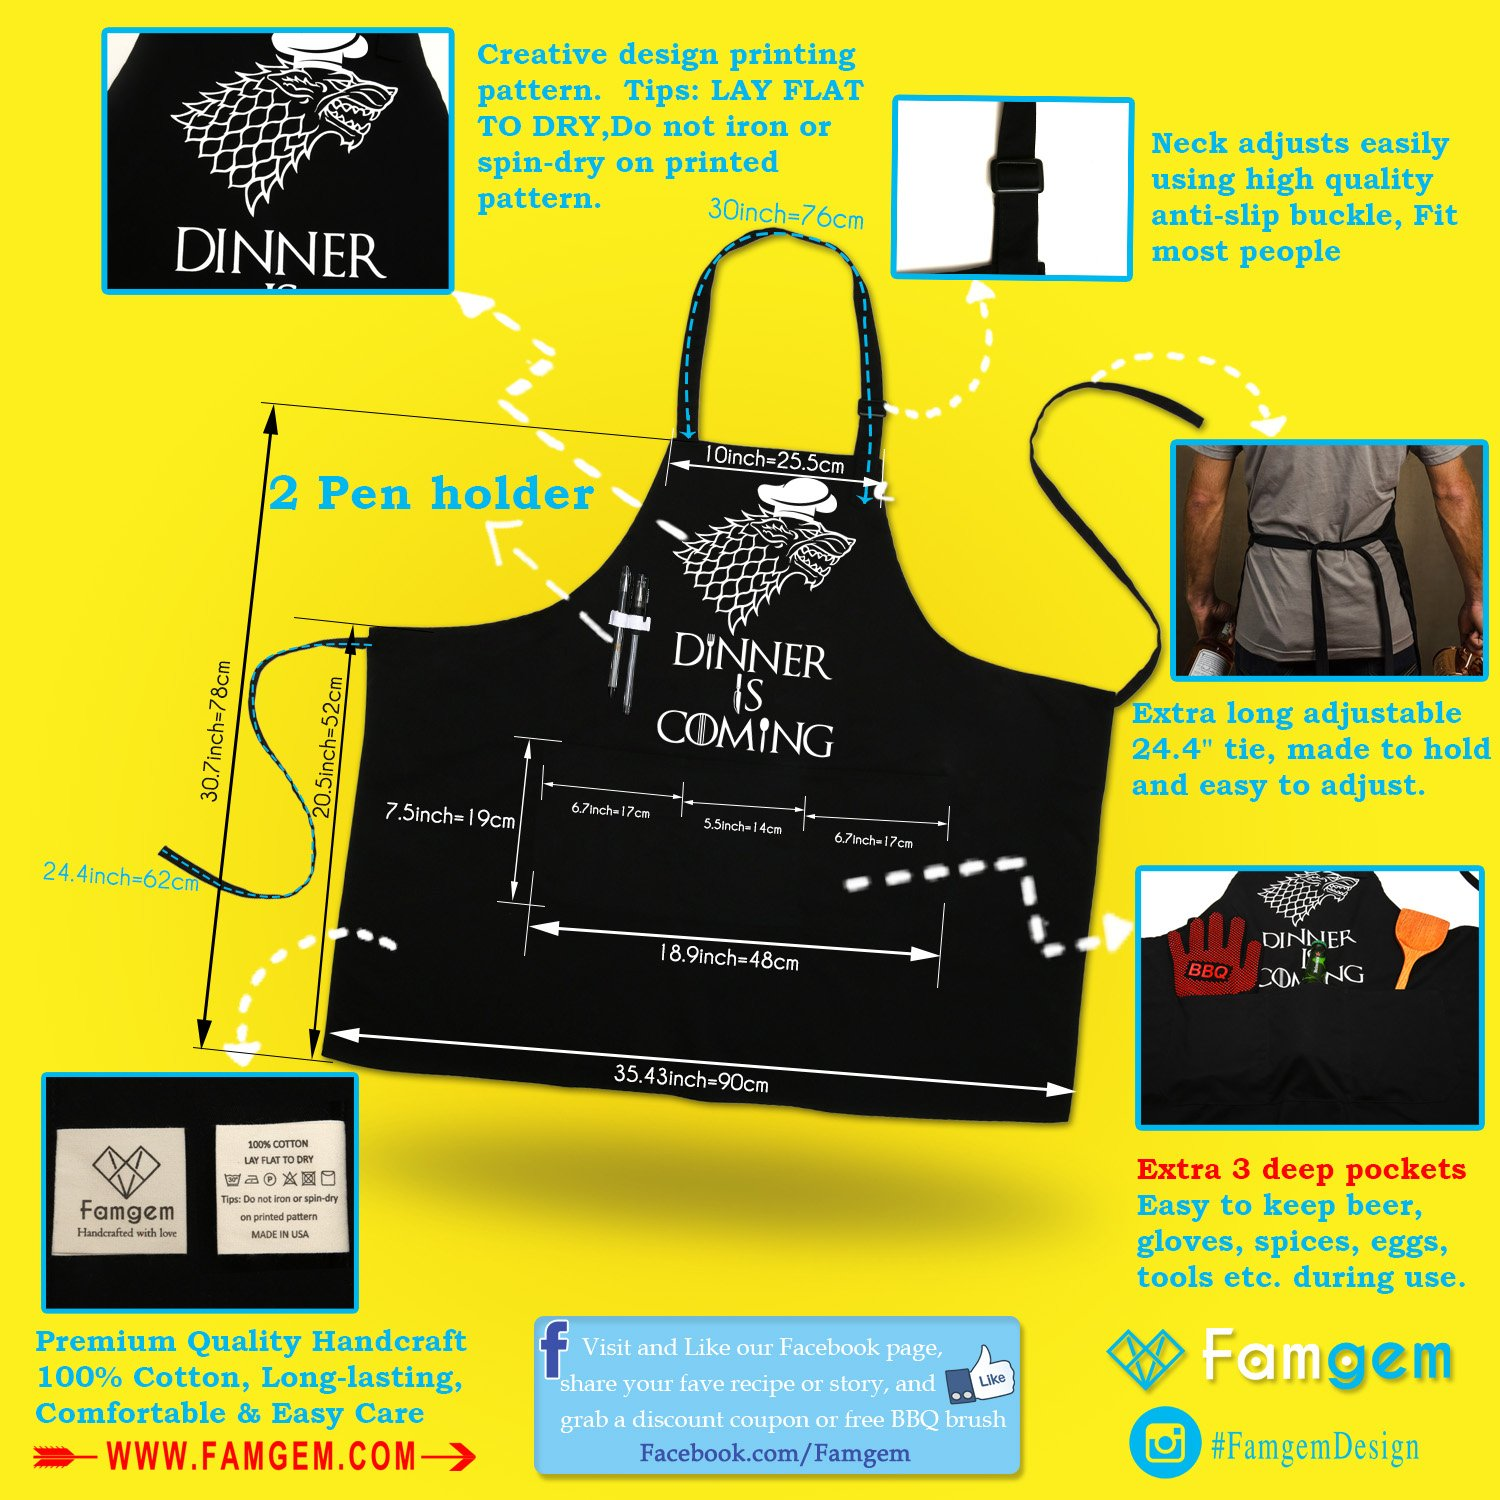 Grill Aprons Kitchen Chef Bib - Famgem Dinner is Coming Professional for BBQ, Baking, Cooking for Men Women / 100% Cotton, Adjustable 3 Pockets, Black by Famgem (Image #3)